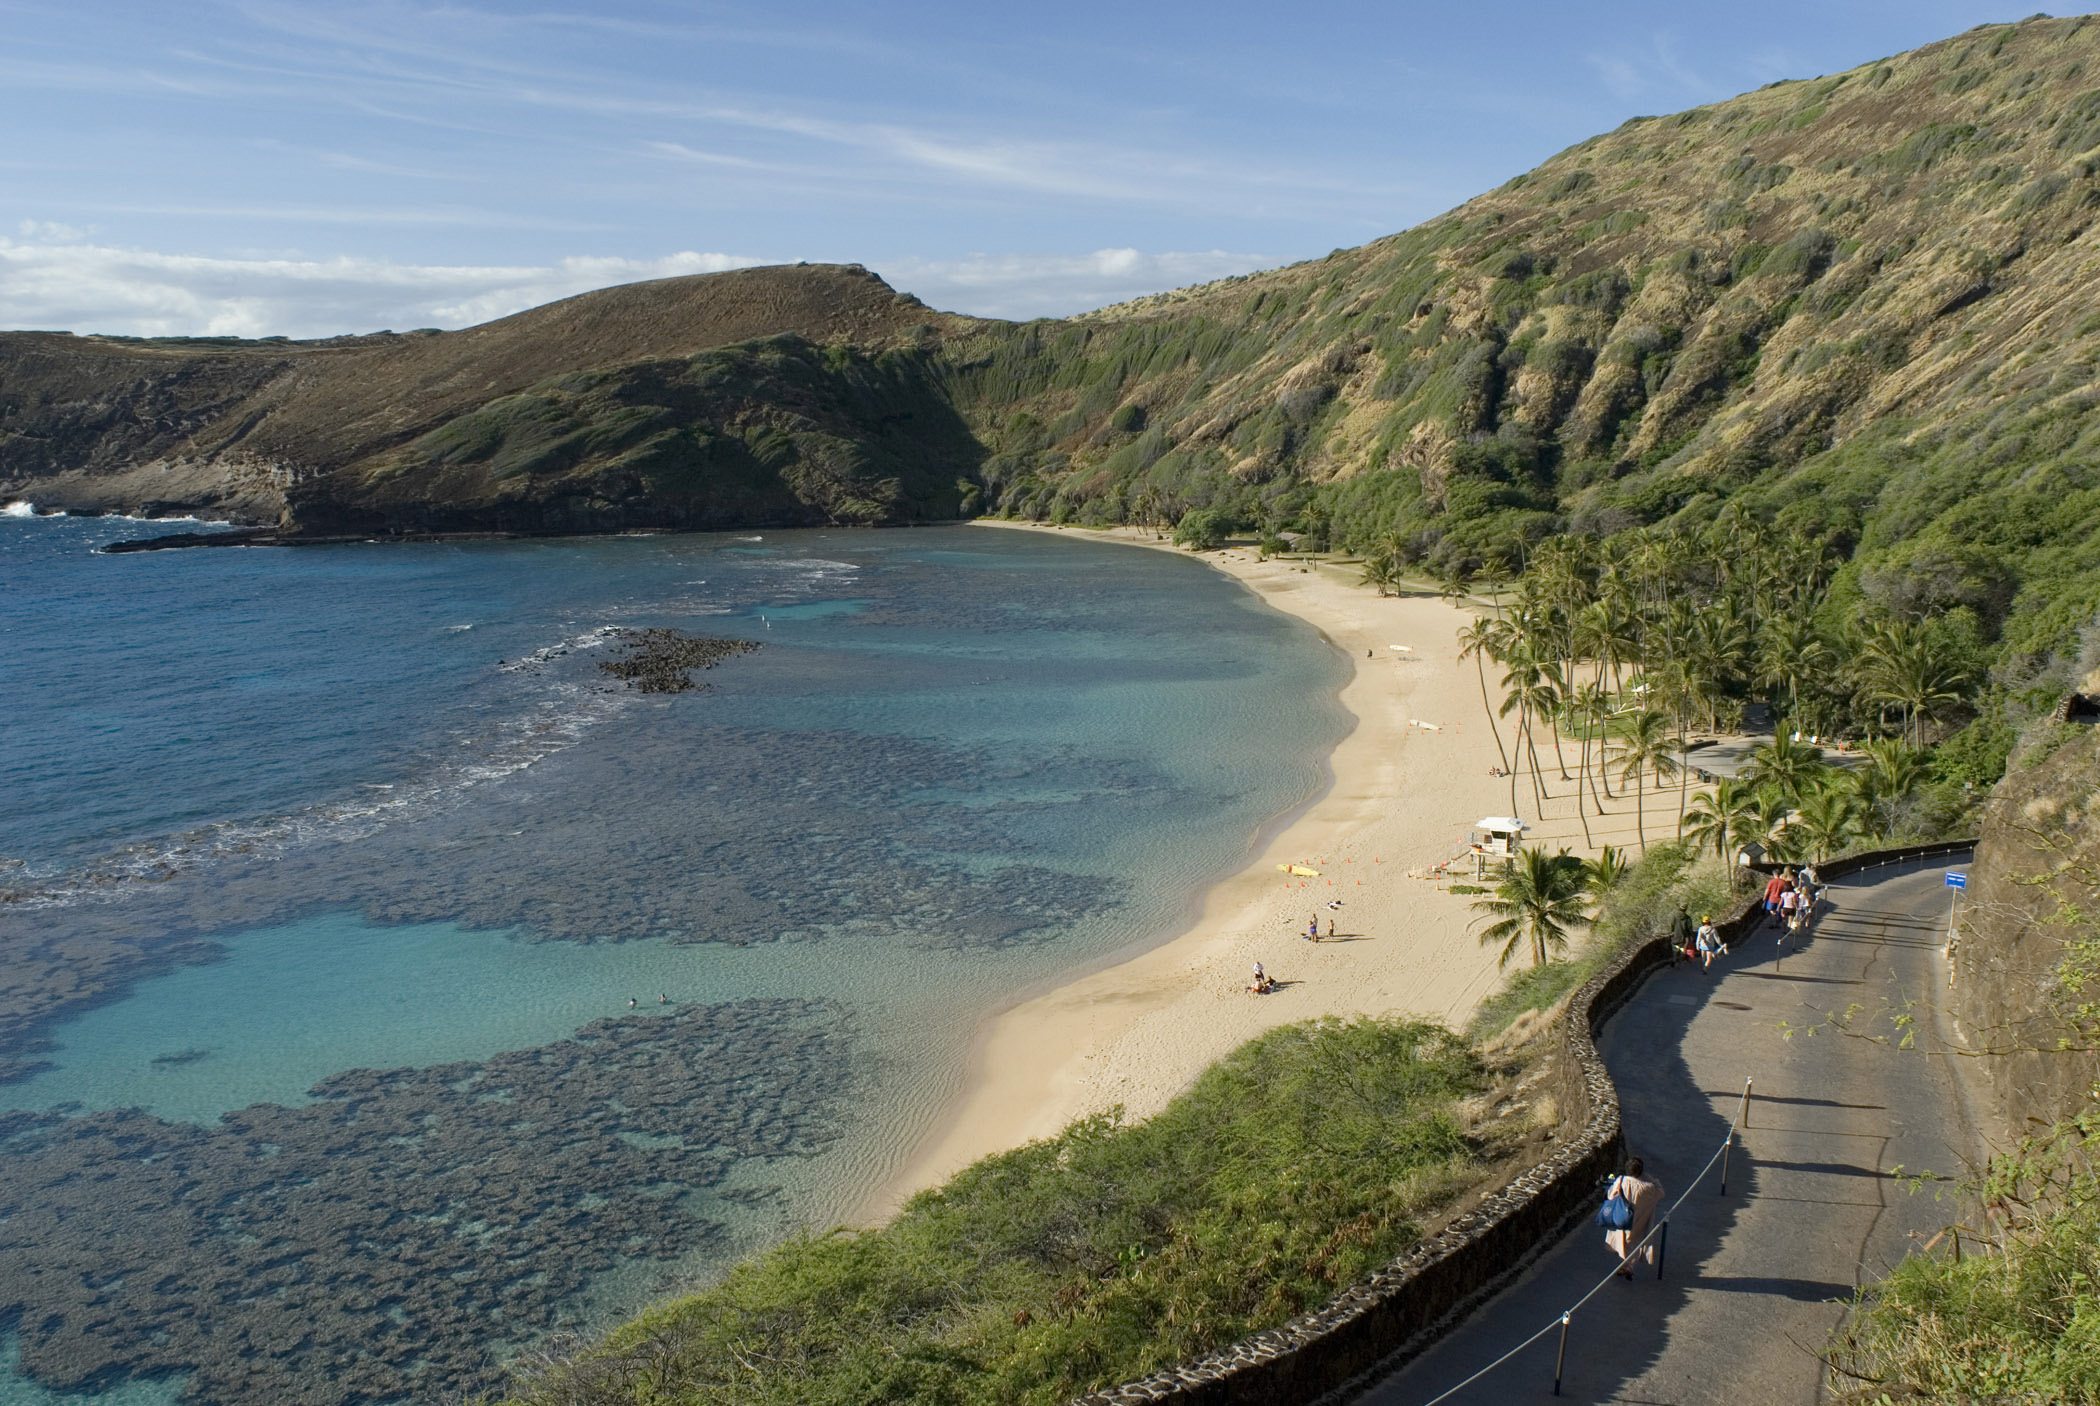 Scenic view of the golden sand of Hanuma Bay Beach, Ohau, Hawaii, a favorite spot for snorkeling and water sport